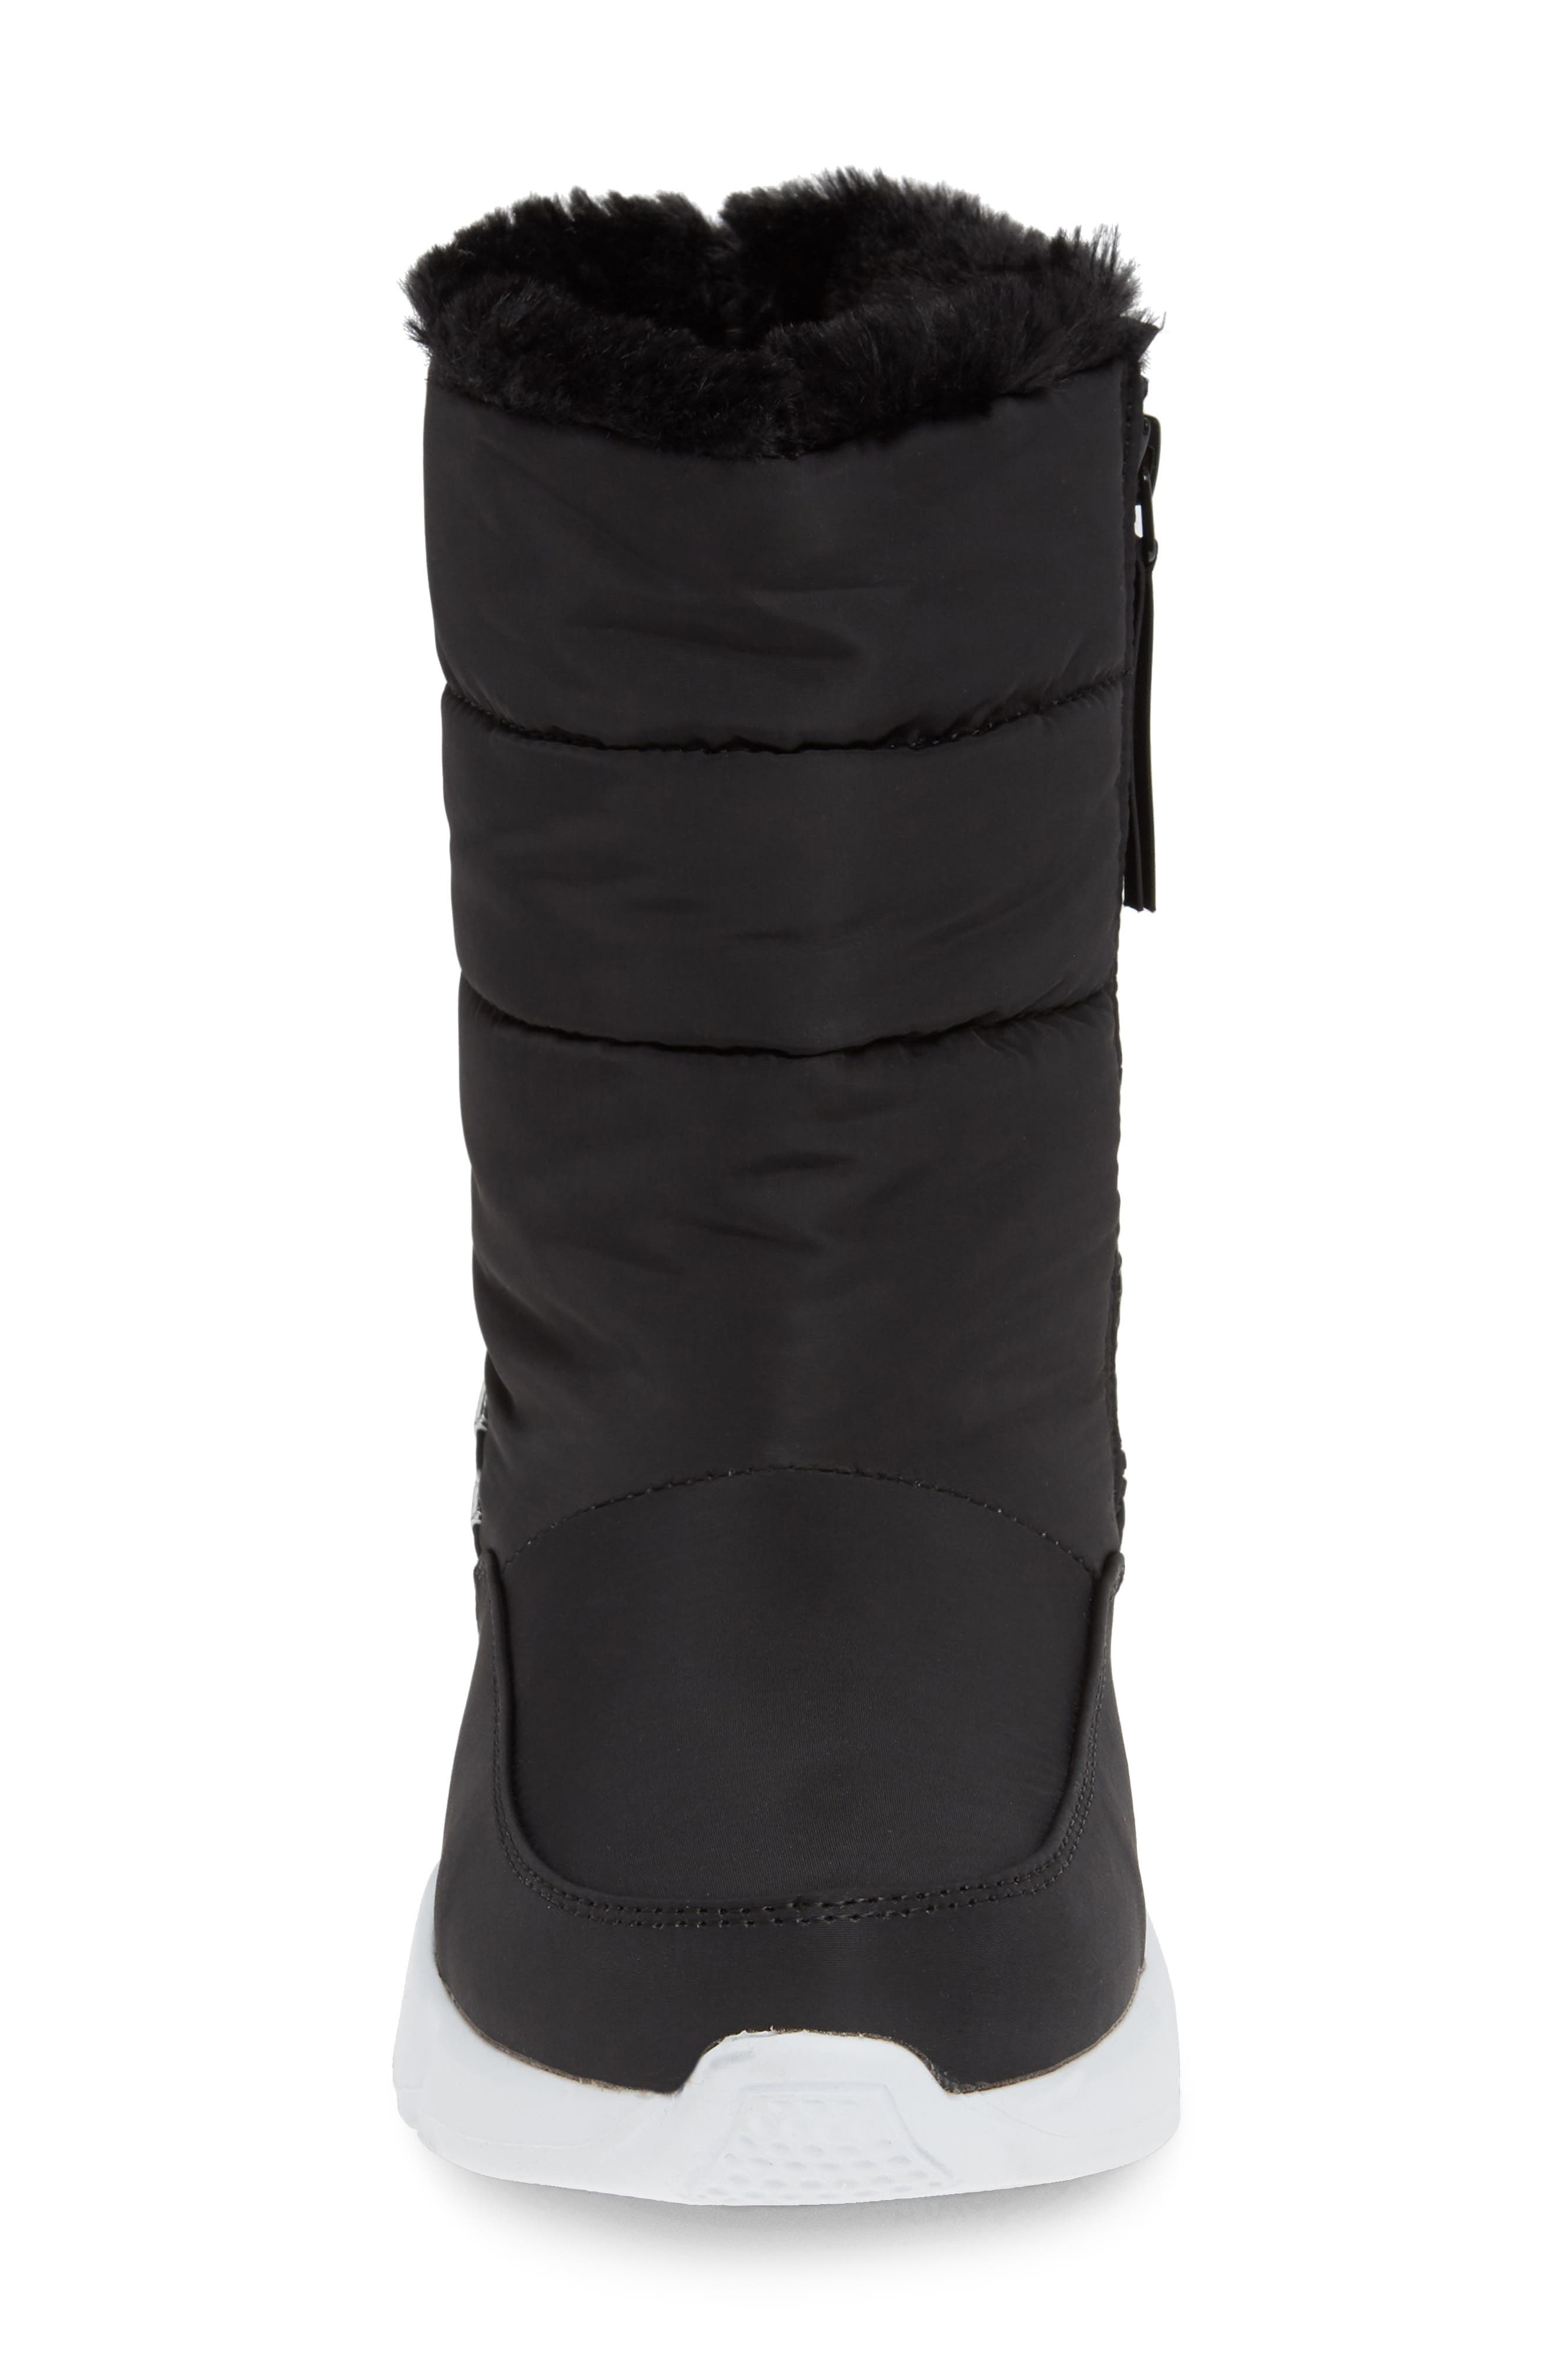 STEVE MADDEN,                             Snowday Faux Fur Lined Boot,                             Alternate thumbnail 4, color,                             BLACK